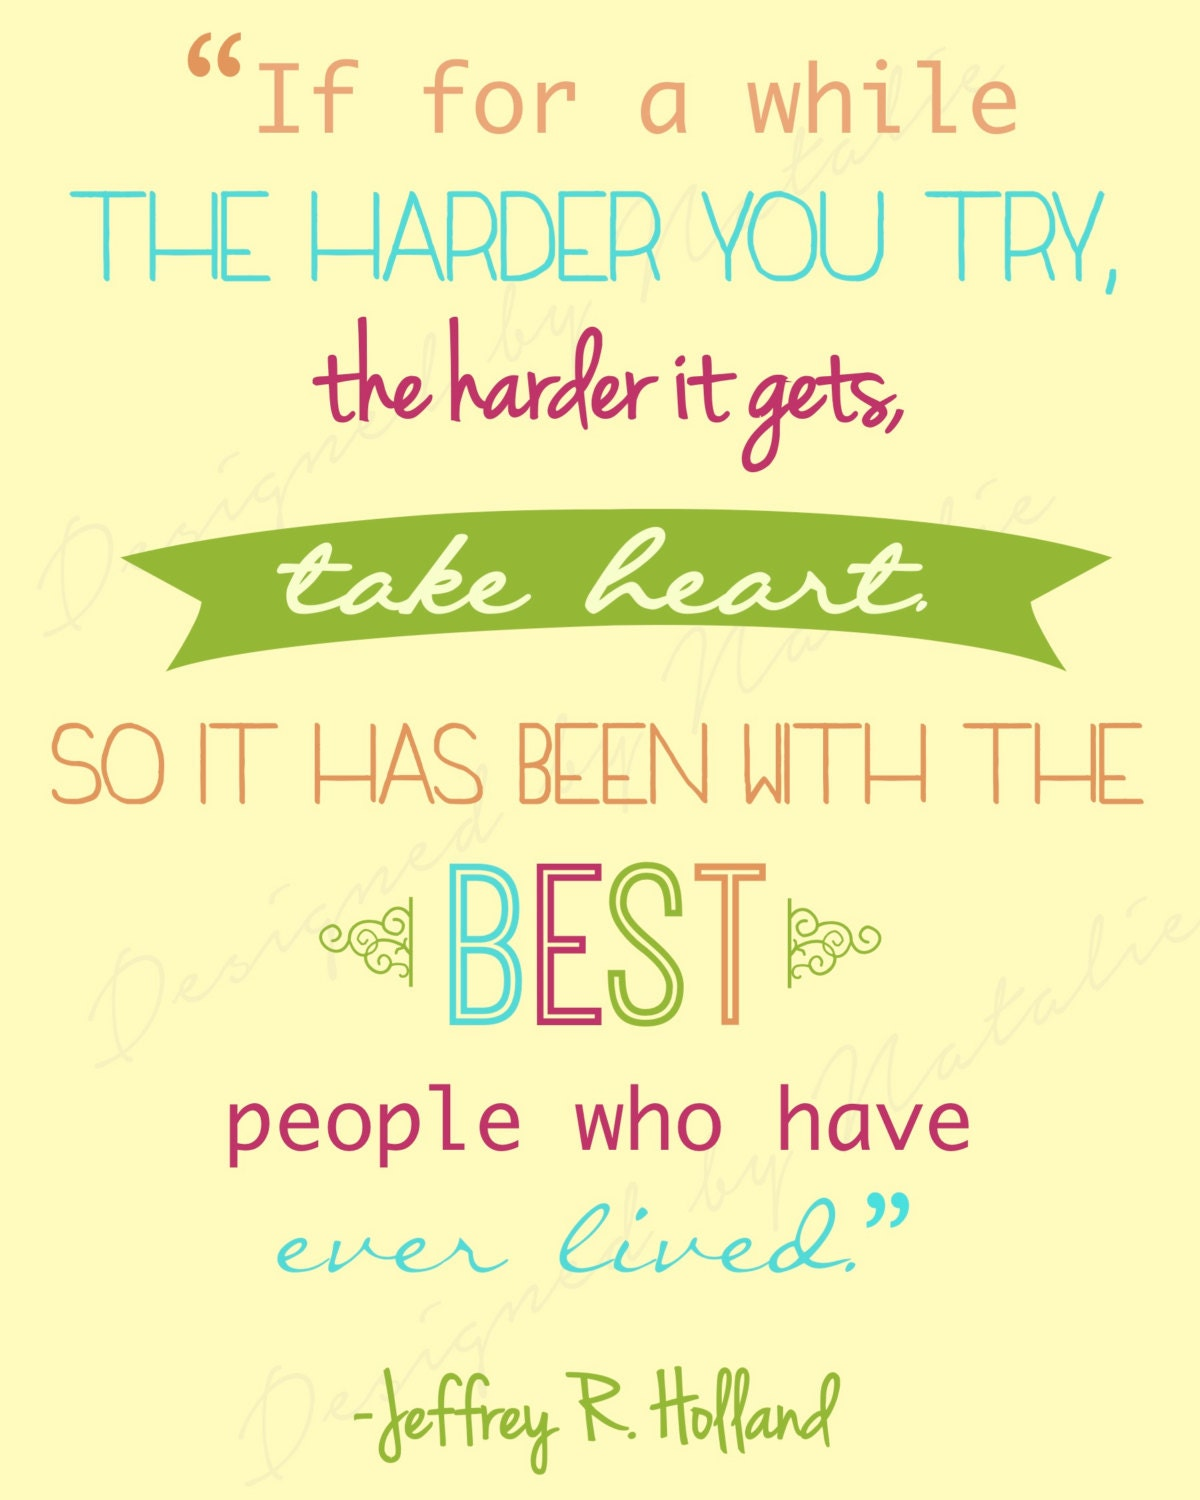 Lds Missionary Quotes Inspirational Missionary Quote While Harder You Try Take Heart